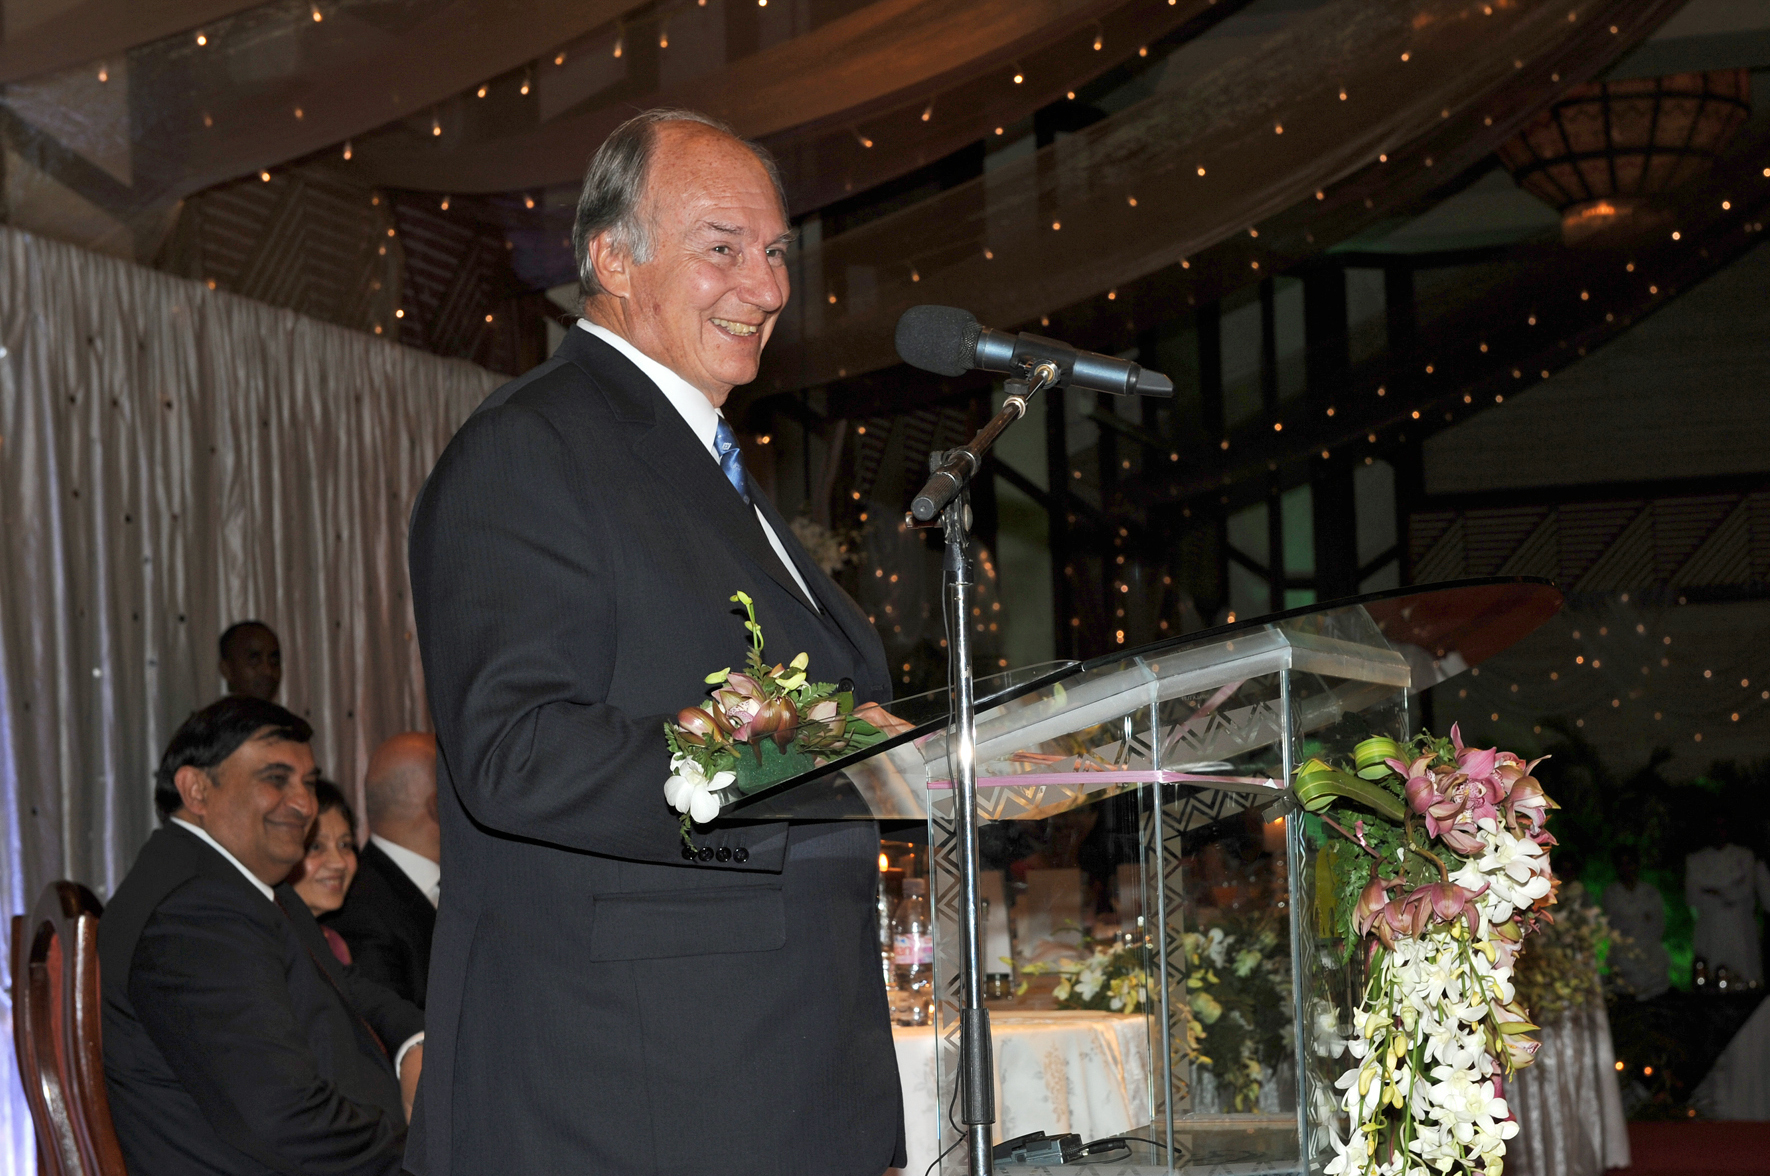 Mawlana Hazar Imam addresses those gathered for the Kenya Jamati Institutional Dinner. Photo: Courtesy of the Ismaili Council for Kenya